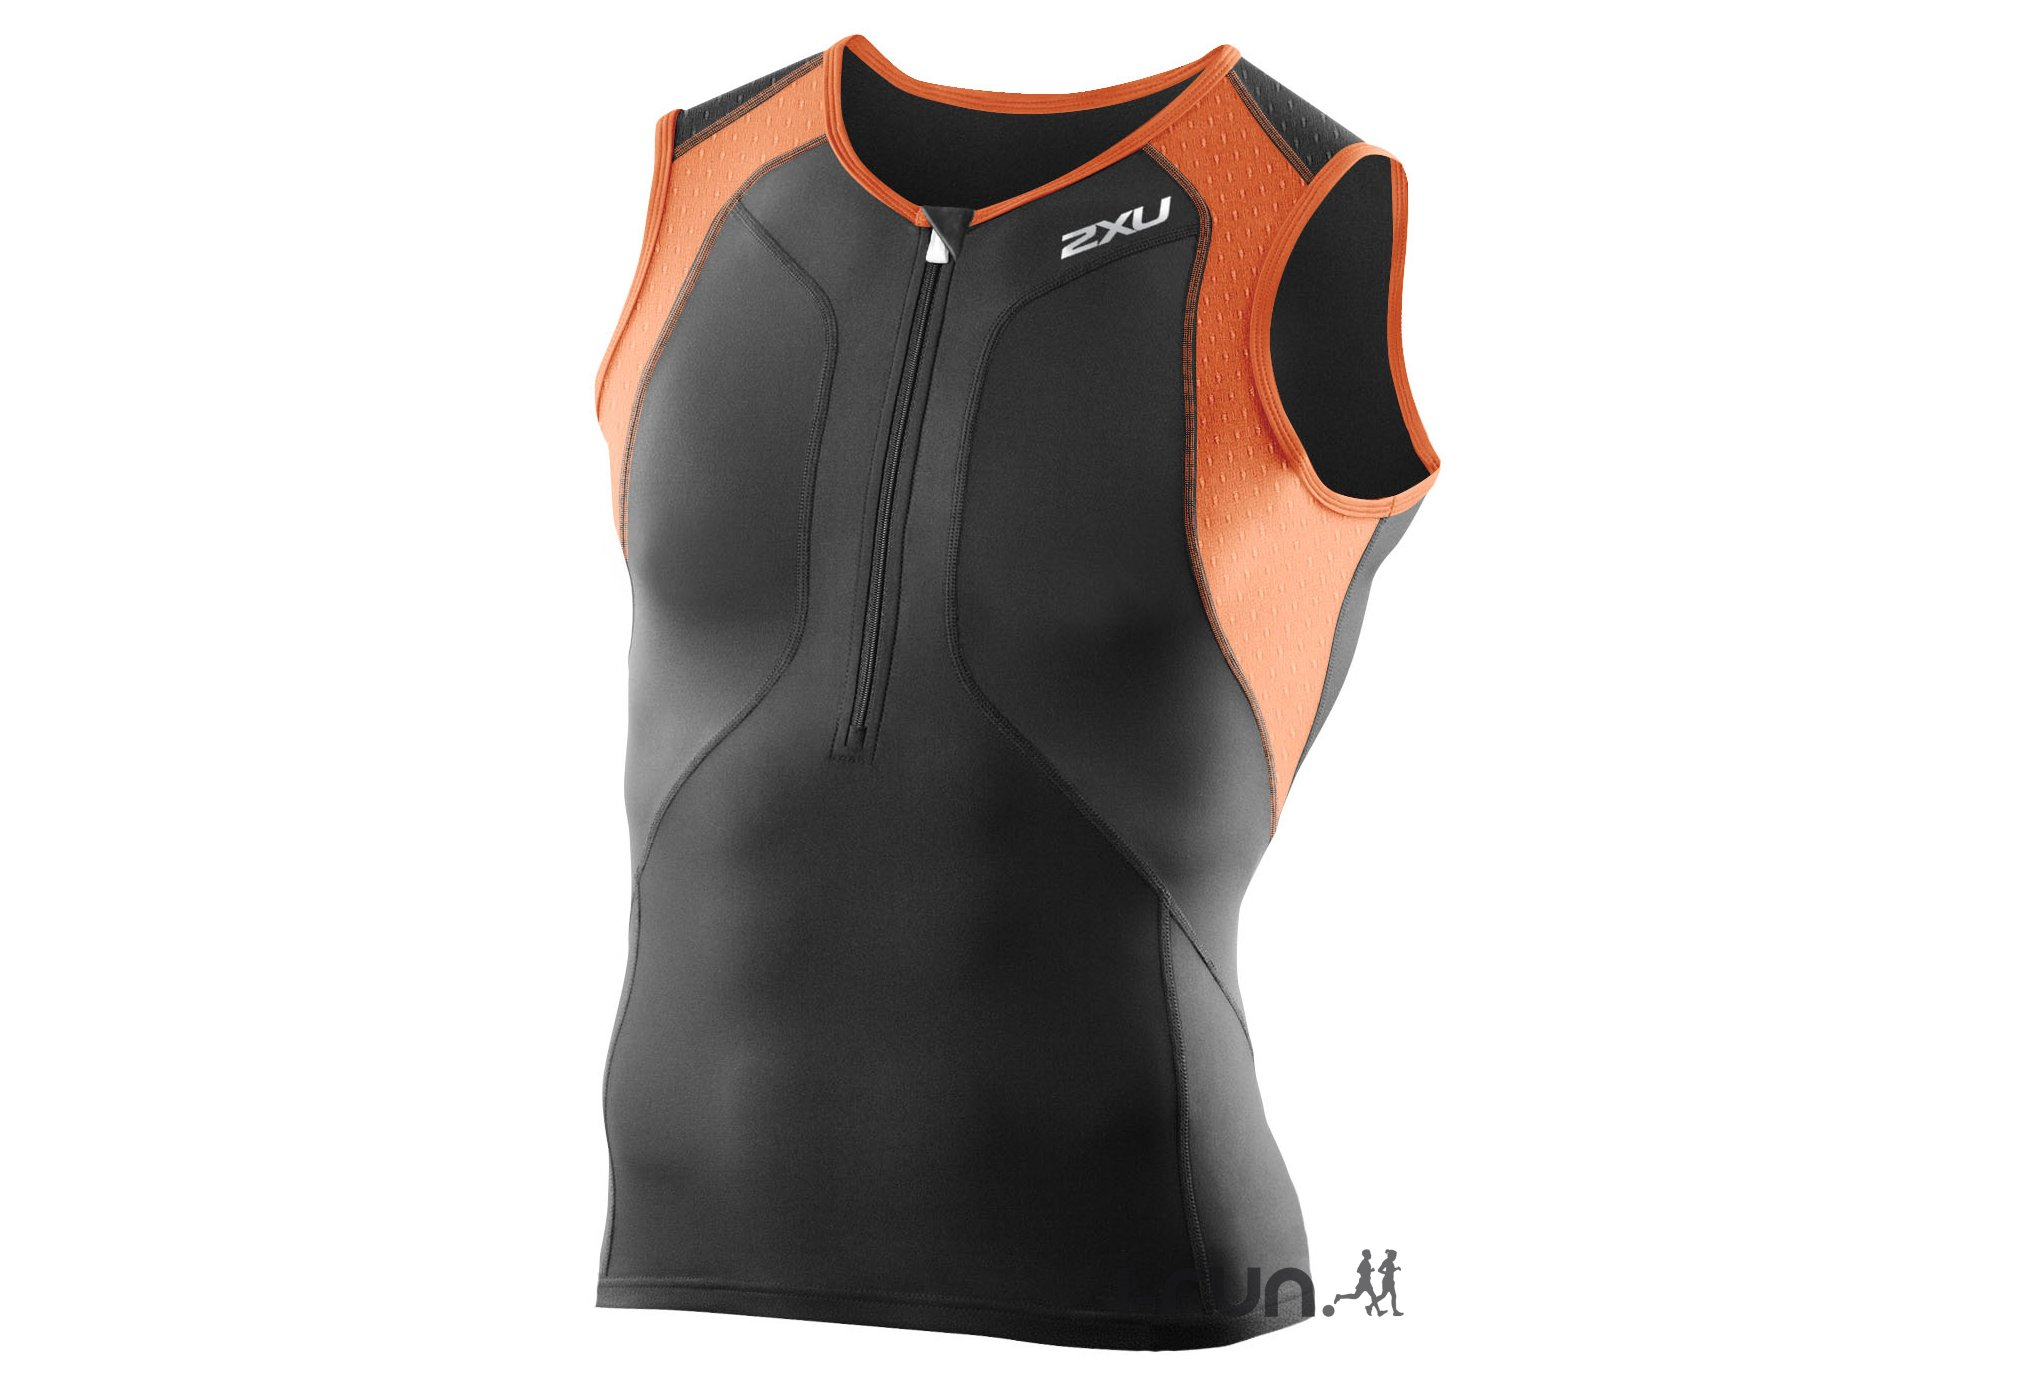 2xu Débardeur perform compression tri m vêtement running homme